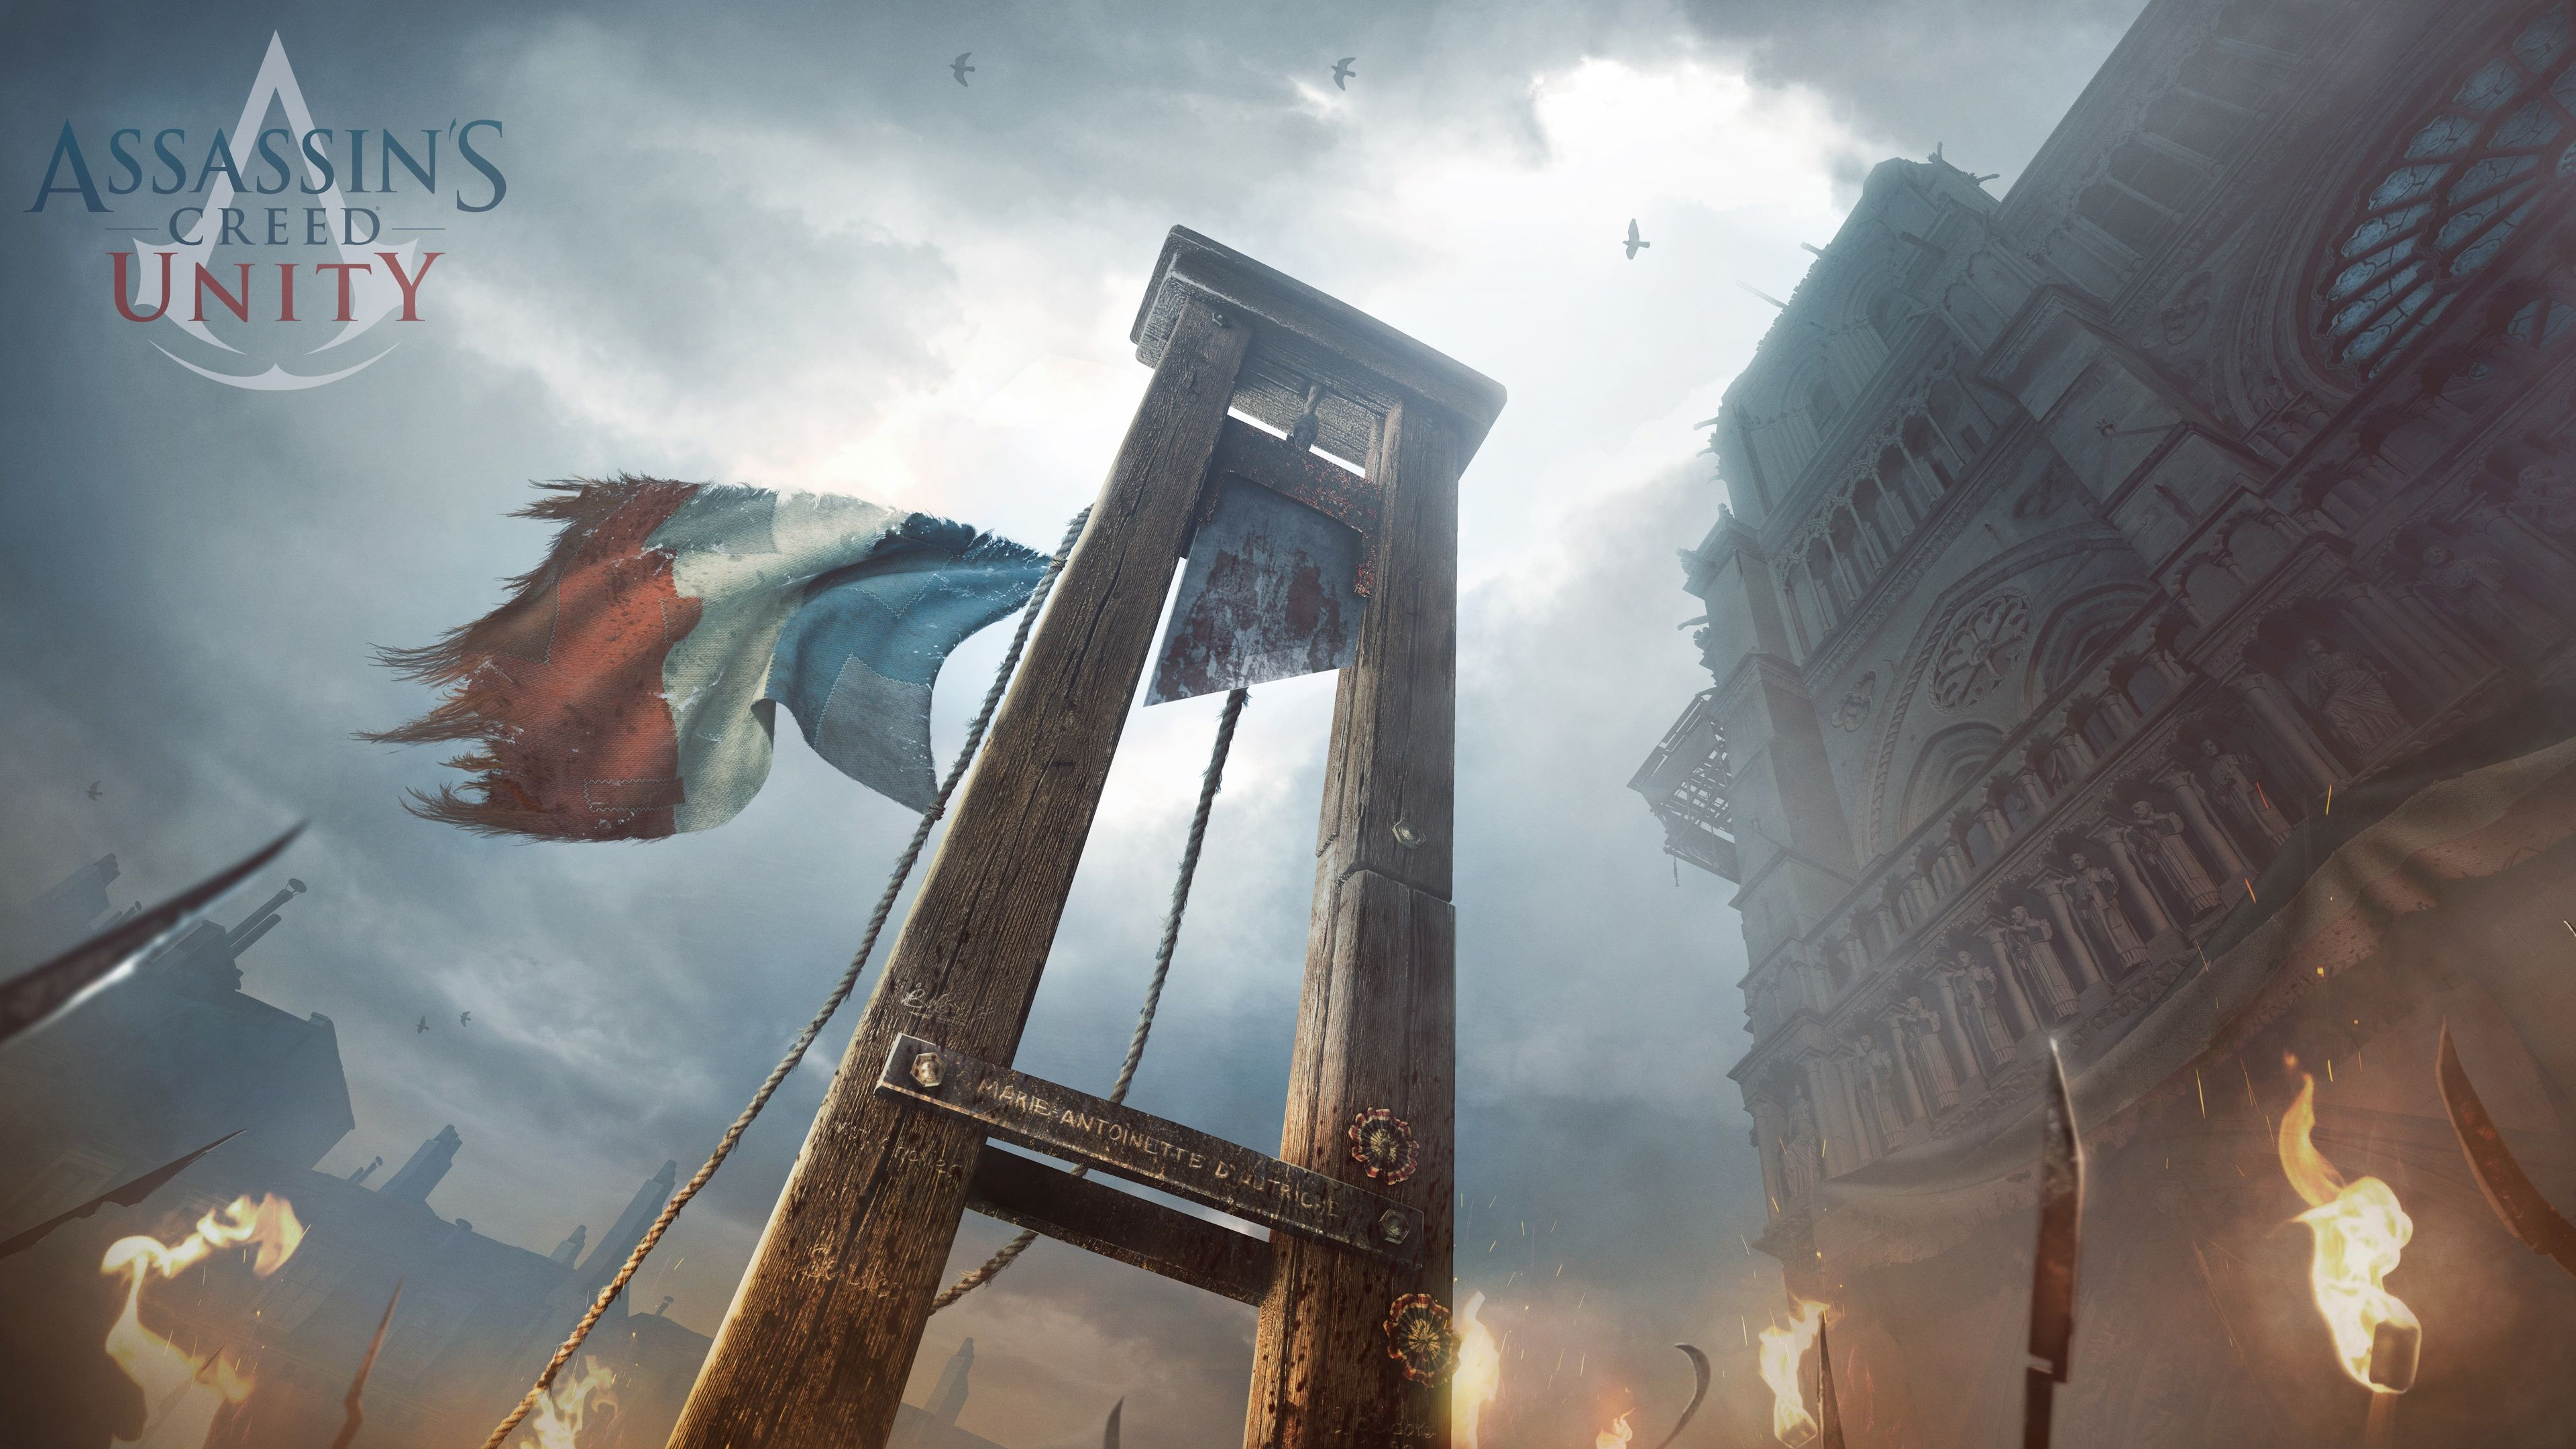 Assassin S Creed Unity Fonds D Ecran Arrieres Plan 3840x2160 Id 548671 Assassins Creed Unity Assassins Creed Assassin S Creed